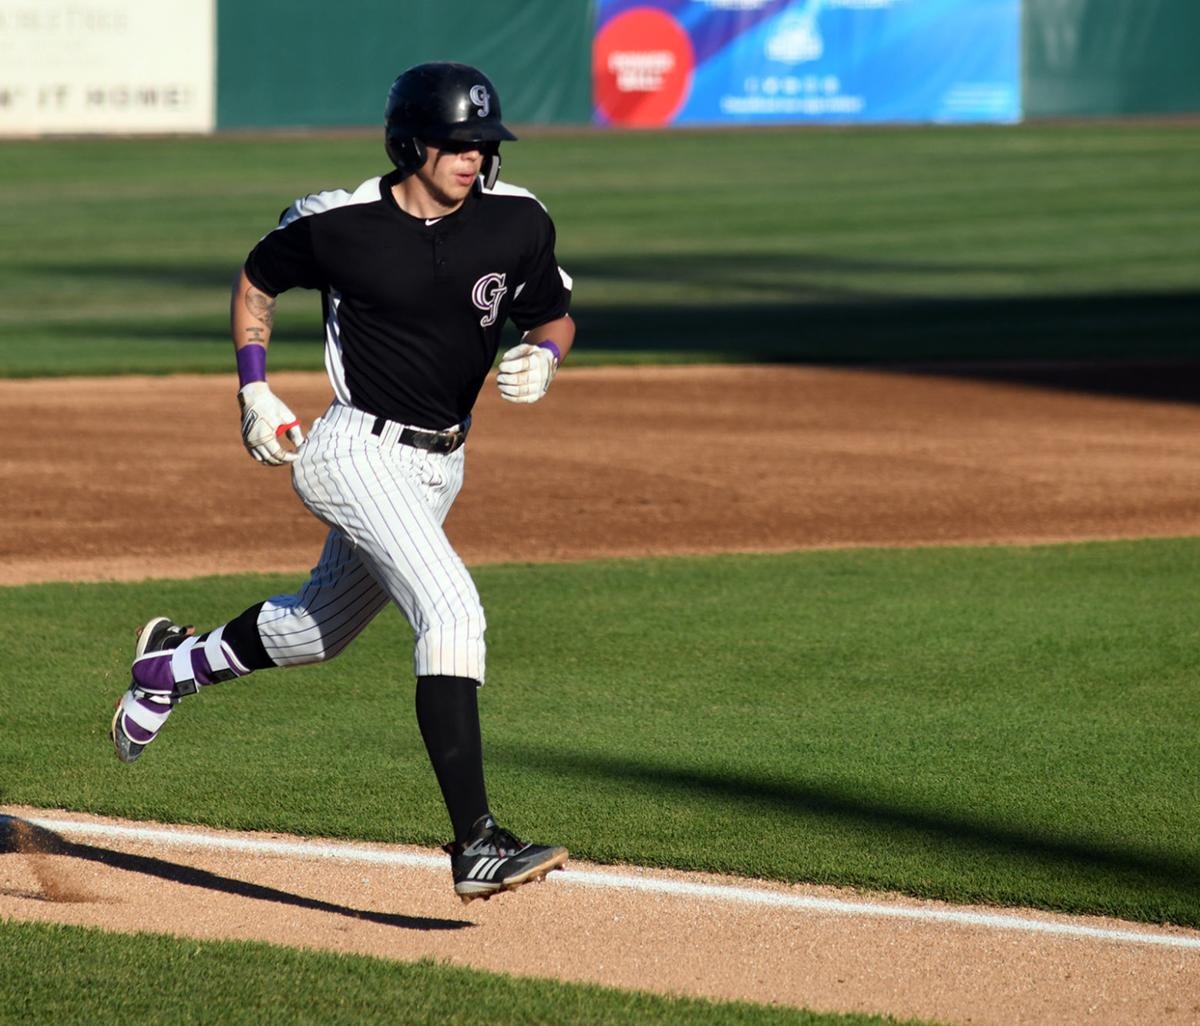 GJ Rockies' rally falls short to the Voyagers